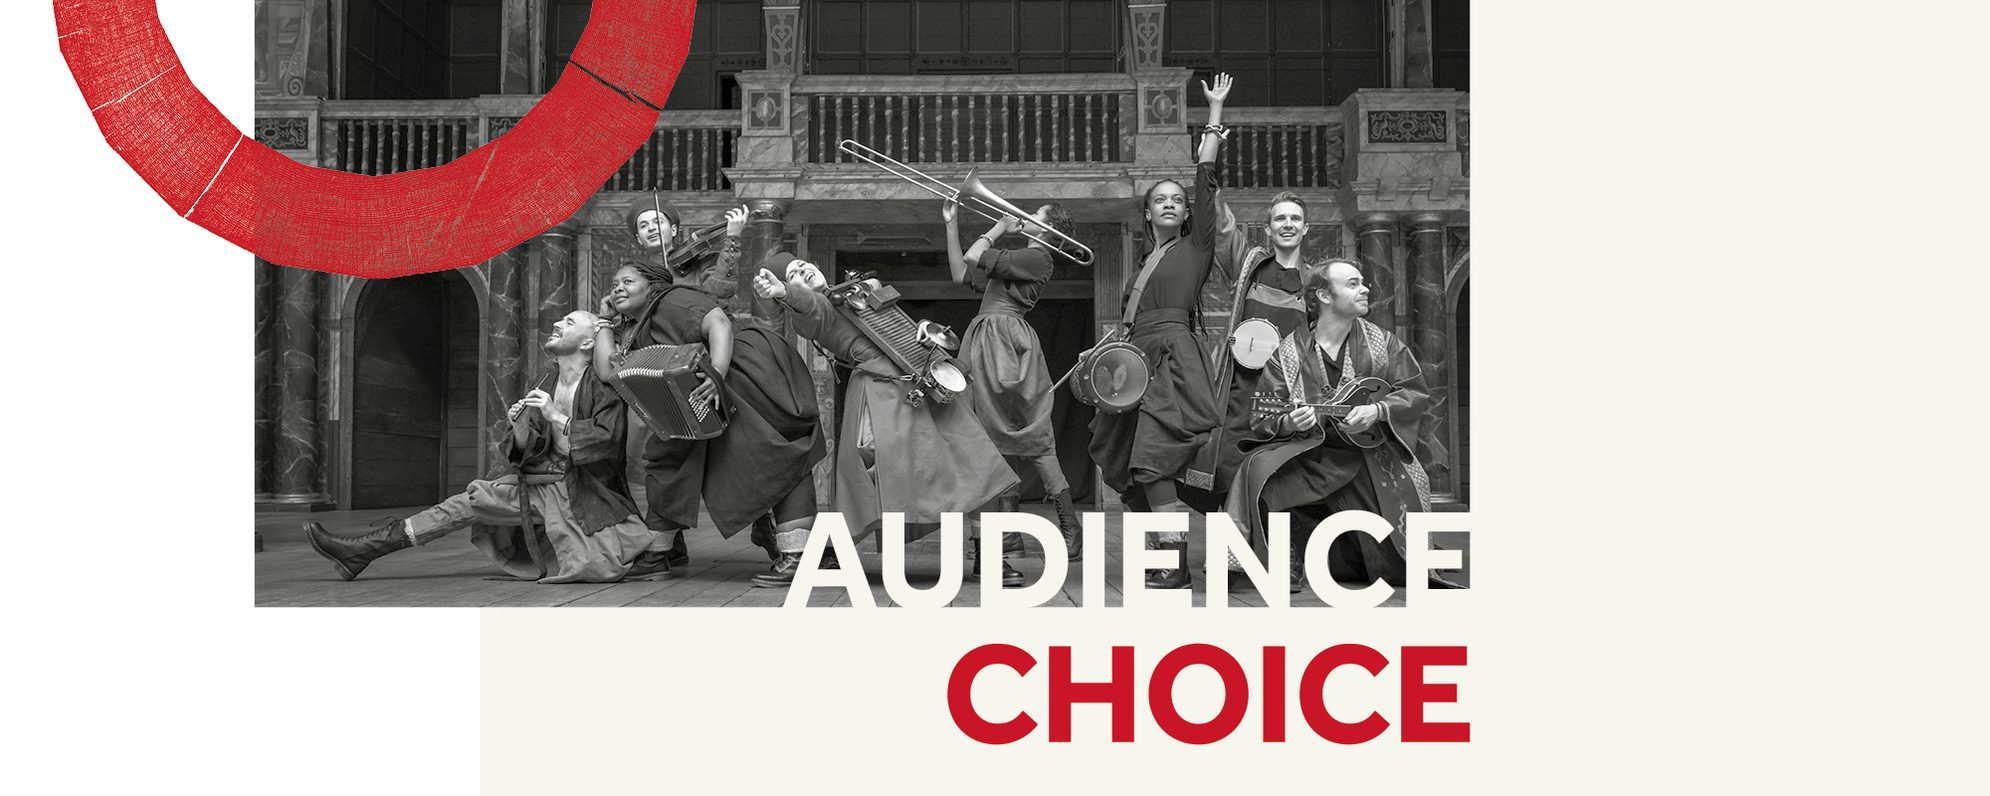 audience_choice_staticmasthead_2000x800_2x